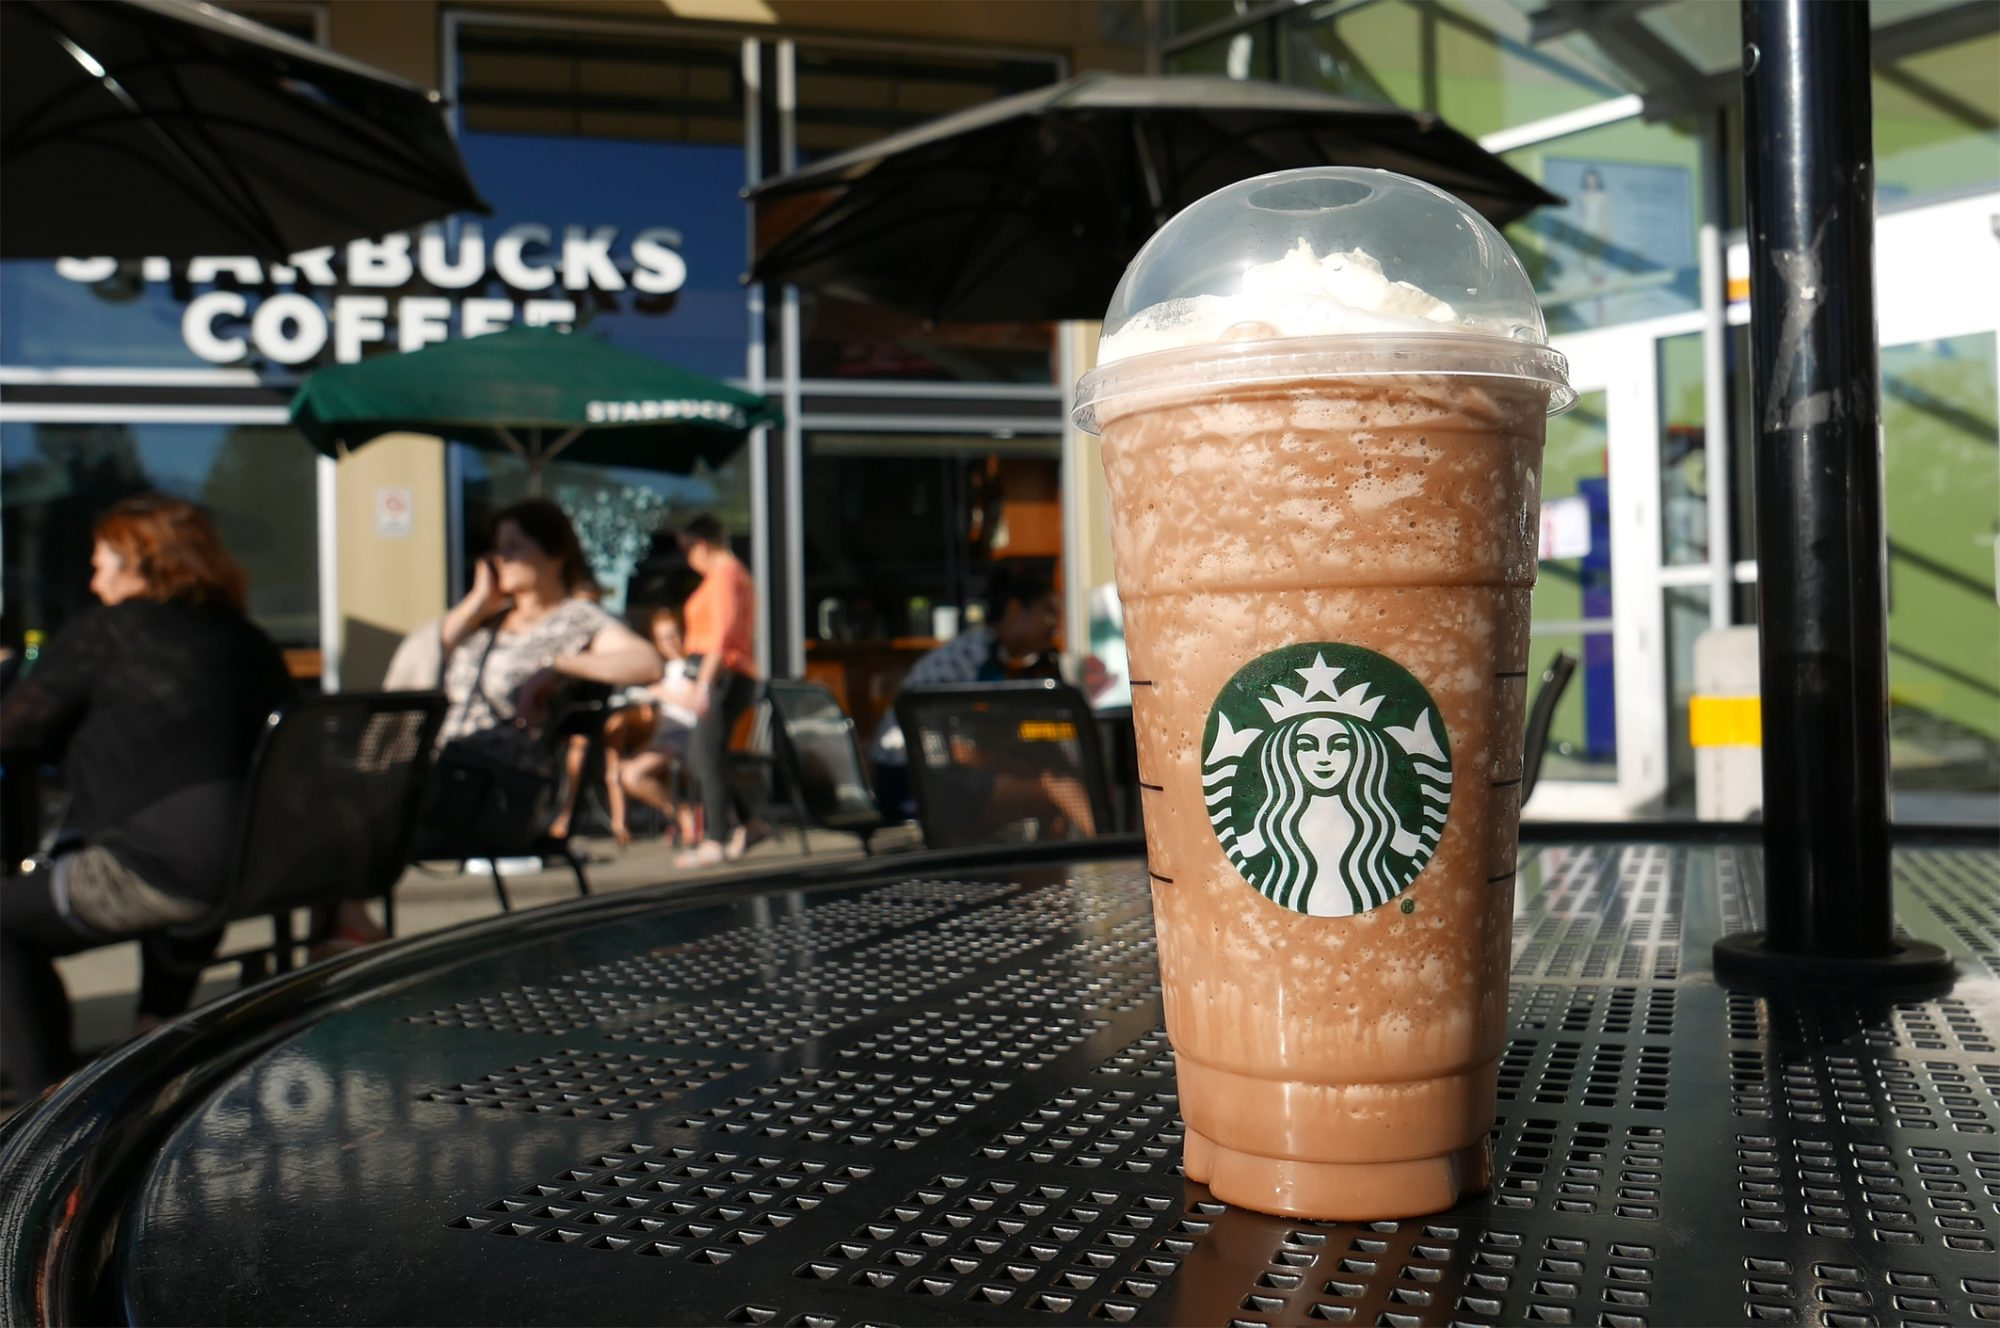 EC: Starbucks' New Frappucino Has a Piece of Chocolate Cake on Top